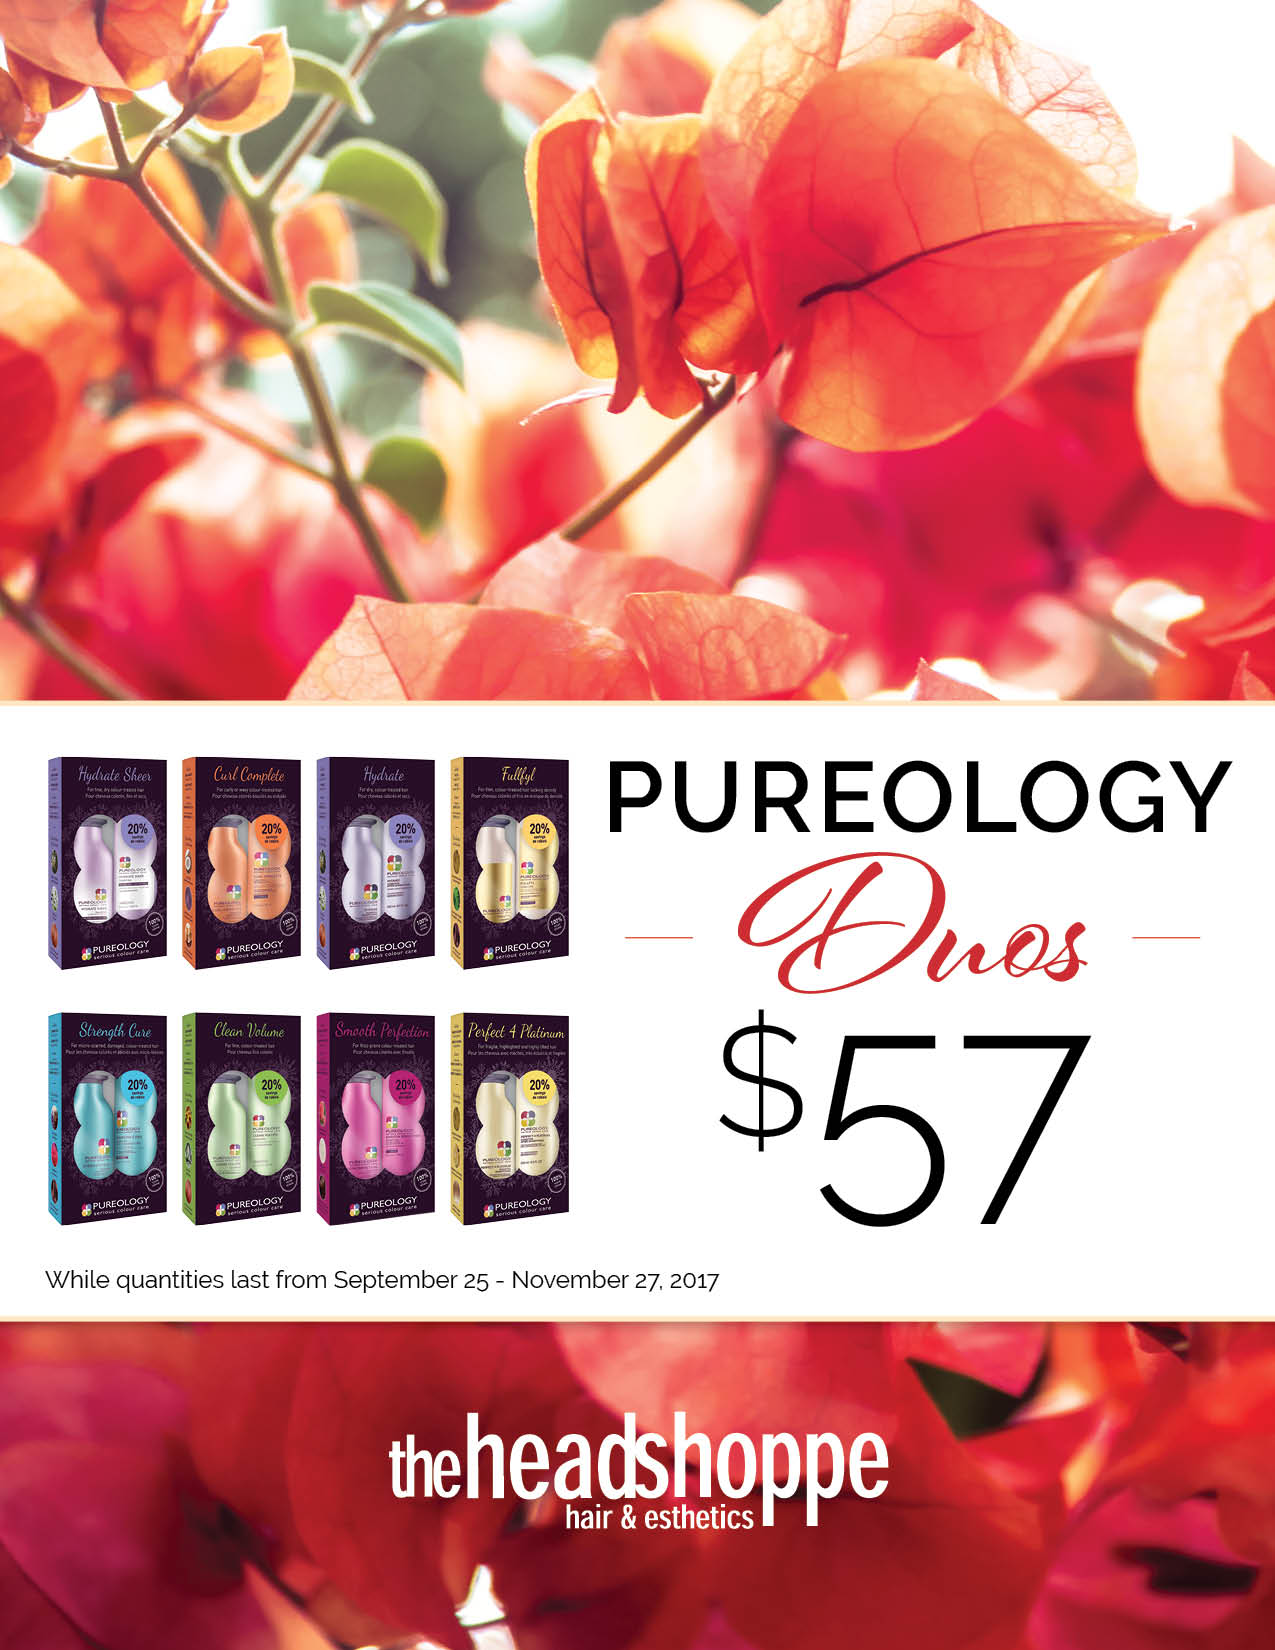 Pureology Duos